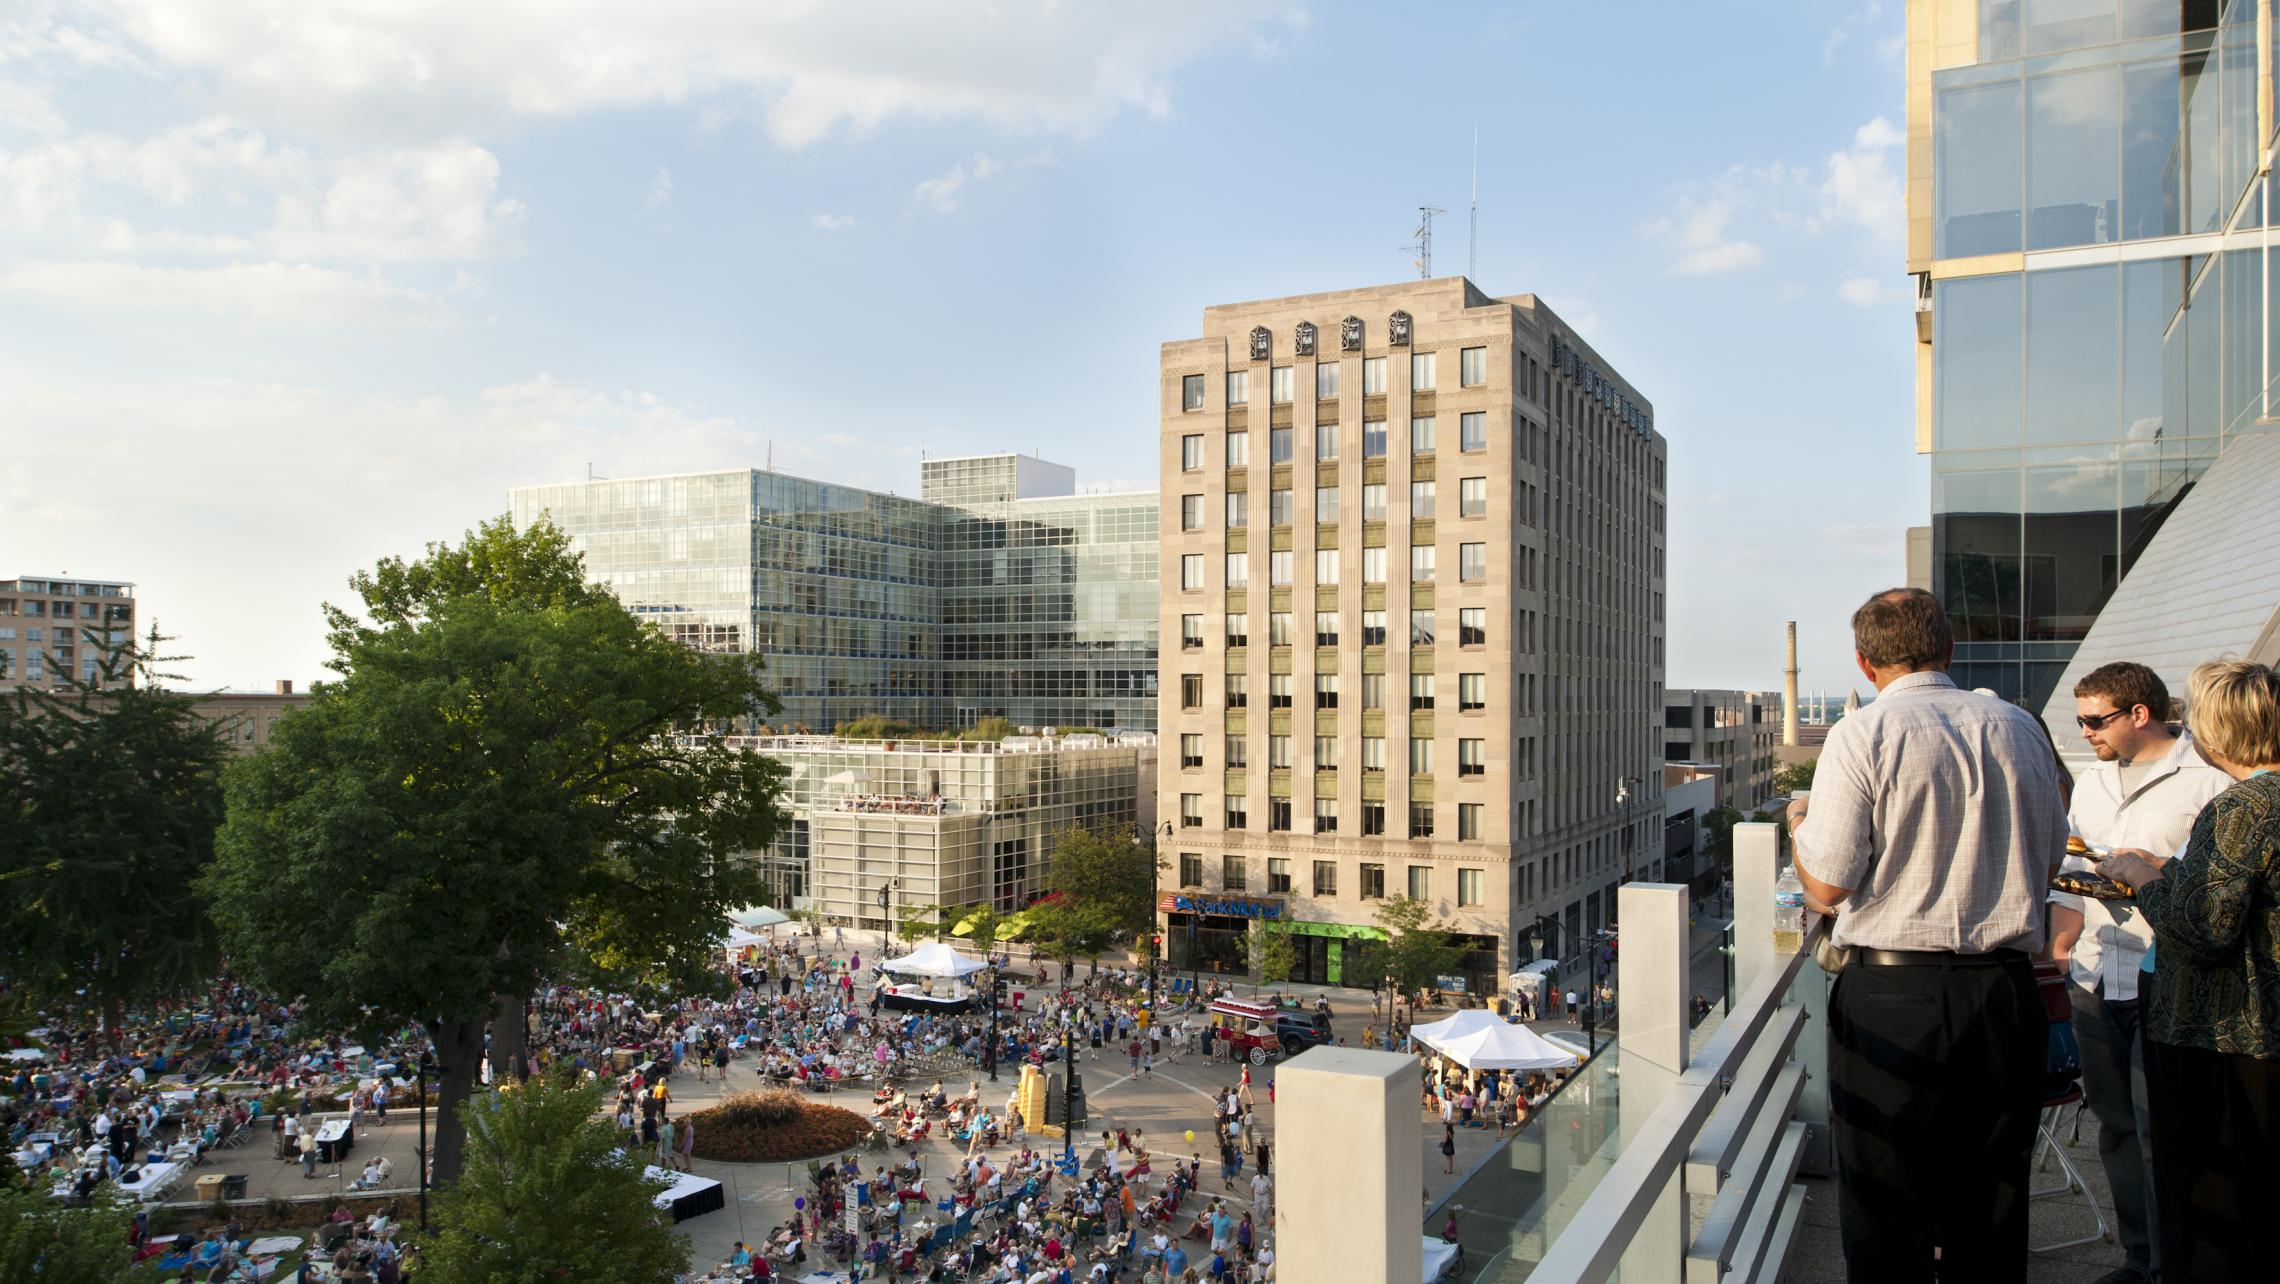 ULI US Bank Plaza and Tenney Plaza, Concerts on the Square Event